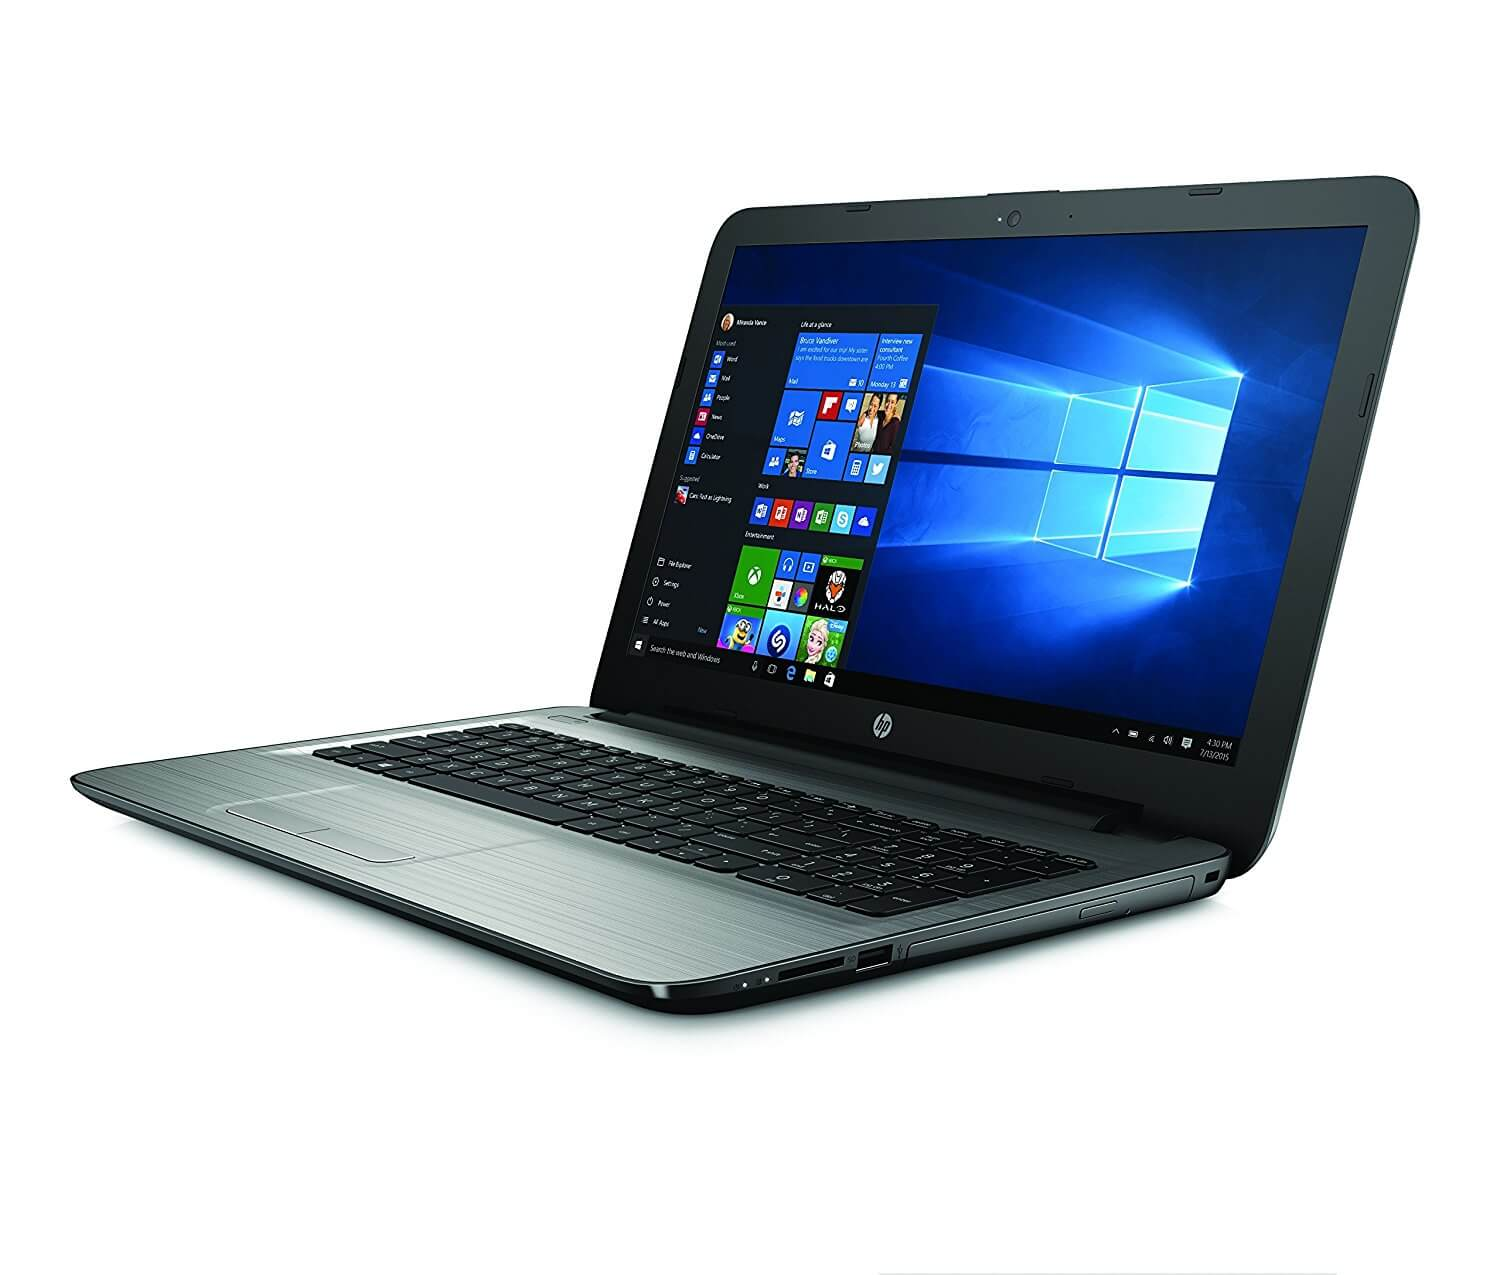 Gaming Laptop under 500 uk: (£529.99) HP 15-ba047na 15.6-Inch AMD A12 withAMD Radeon R7 Graphics